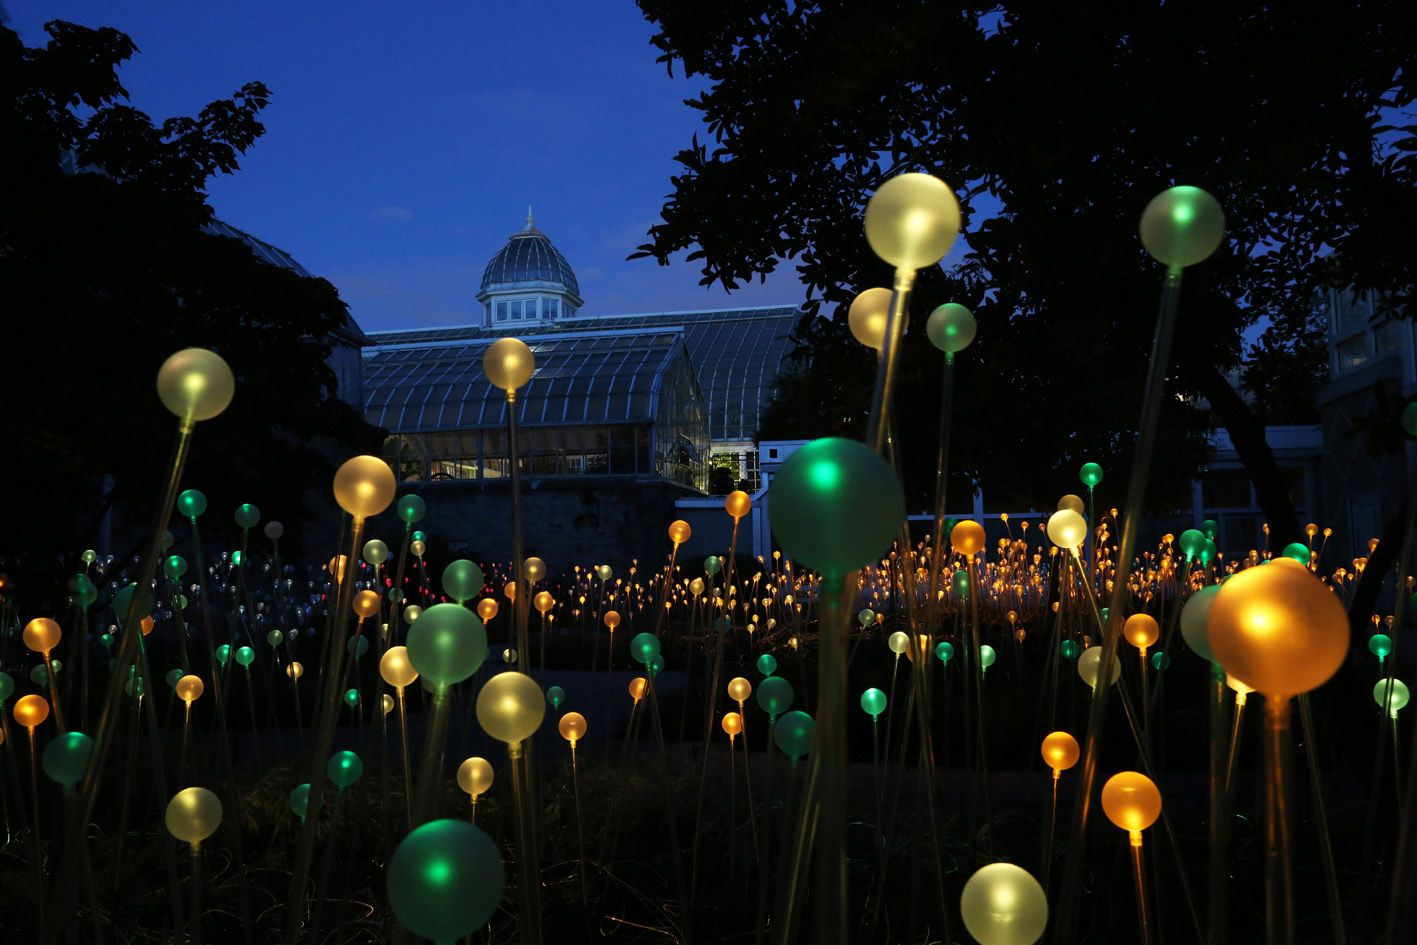 Franklin Park Conservatory Christmas Lights.Field Of Light 2013 By Bruce Munro Heaven In 2019 Light